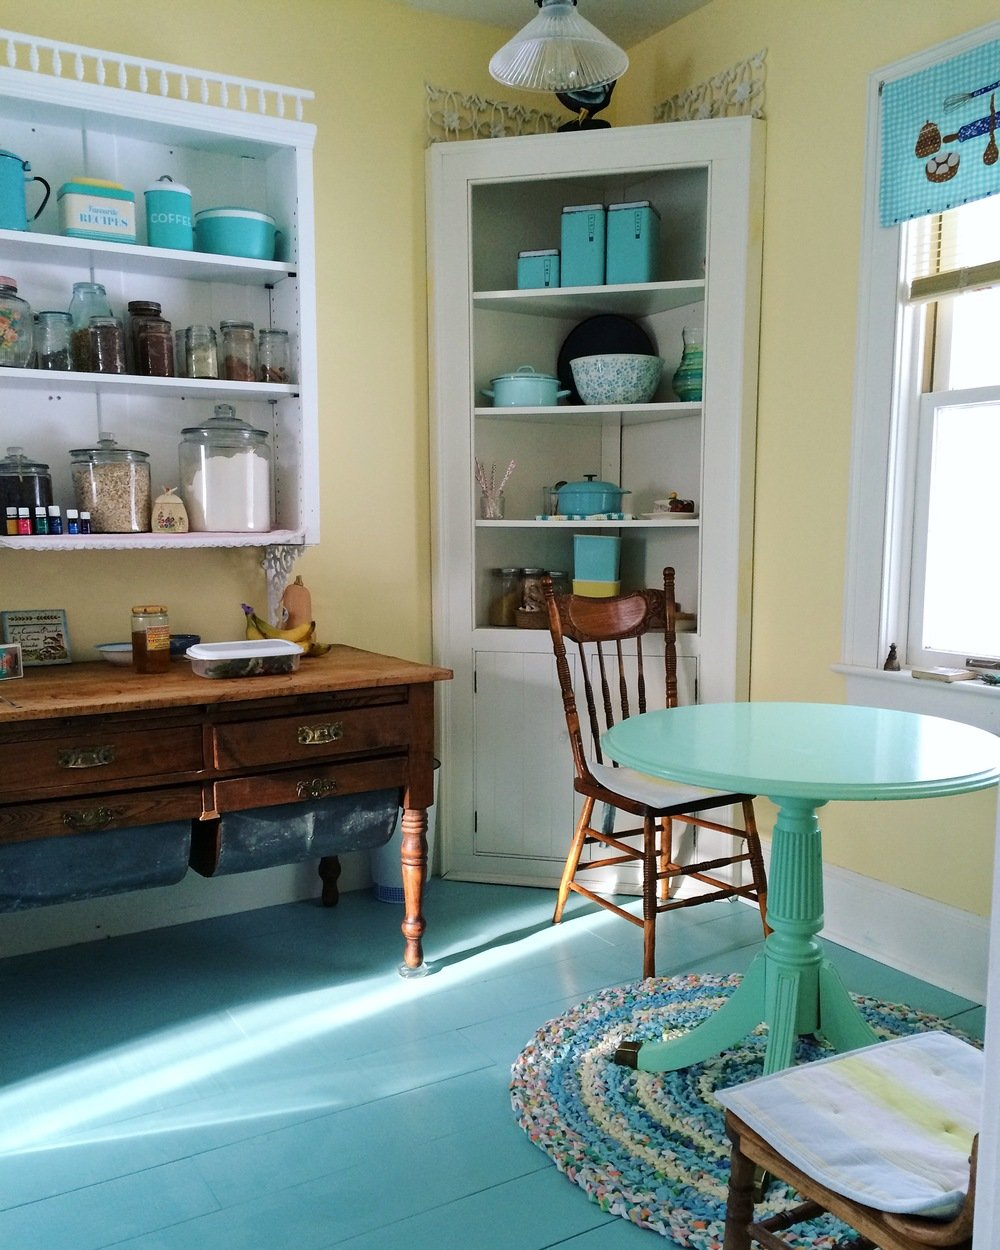 This is where all the green juice and smoothies happen.YES, this really is our kitchen, YES we love blue, and YES this space inspires us to cook up a storm! :)